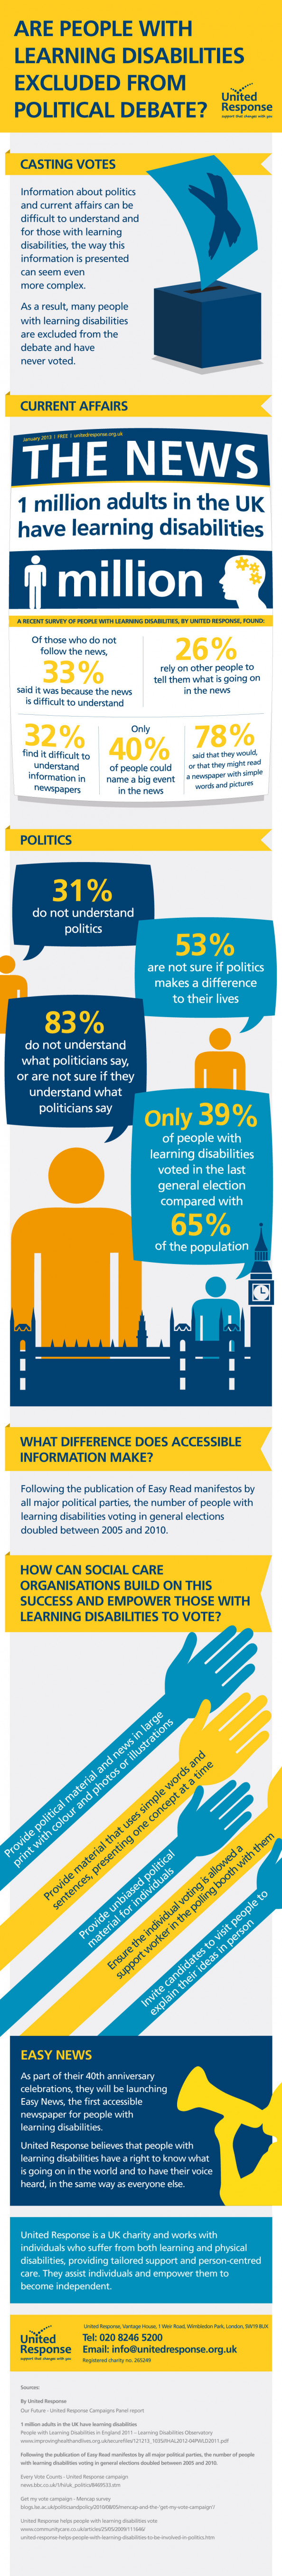 Easy News Helps Those With Learning Disabilities Infographic